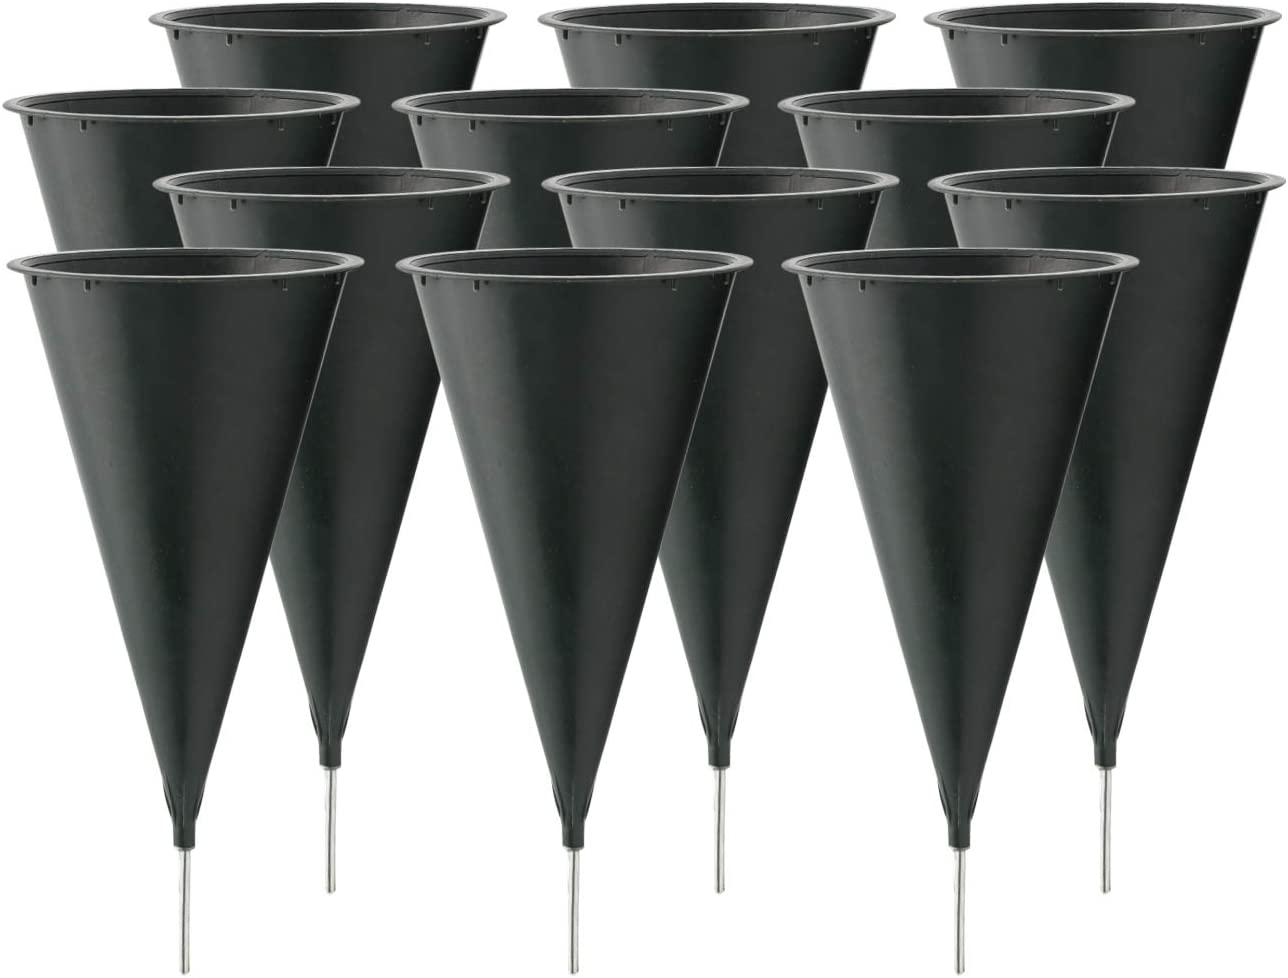 Royal Imports Cemetery Flower Vase Cone for Graveside Memorial with Metal Stake (Medium) 9.75 X 4 inch - 12 Pk